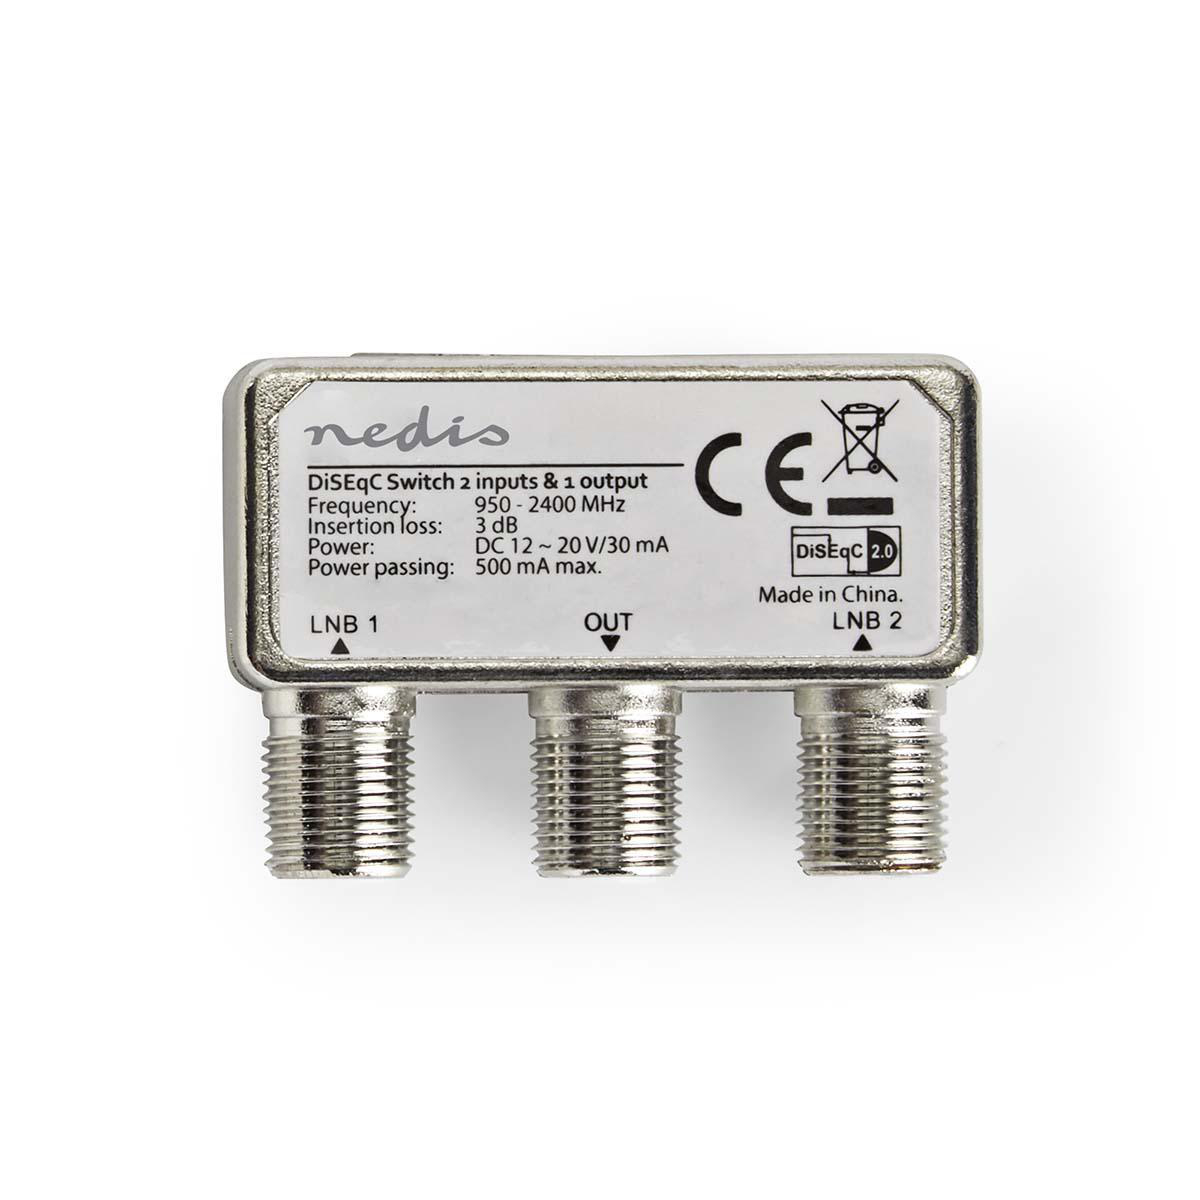 Double DiSEqC 2.0 switch 2 in//1 out.